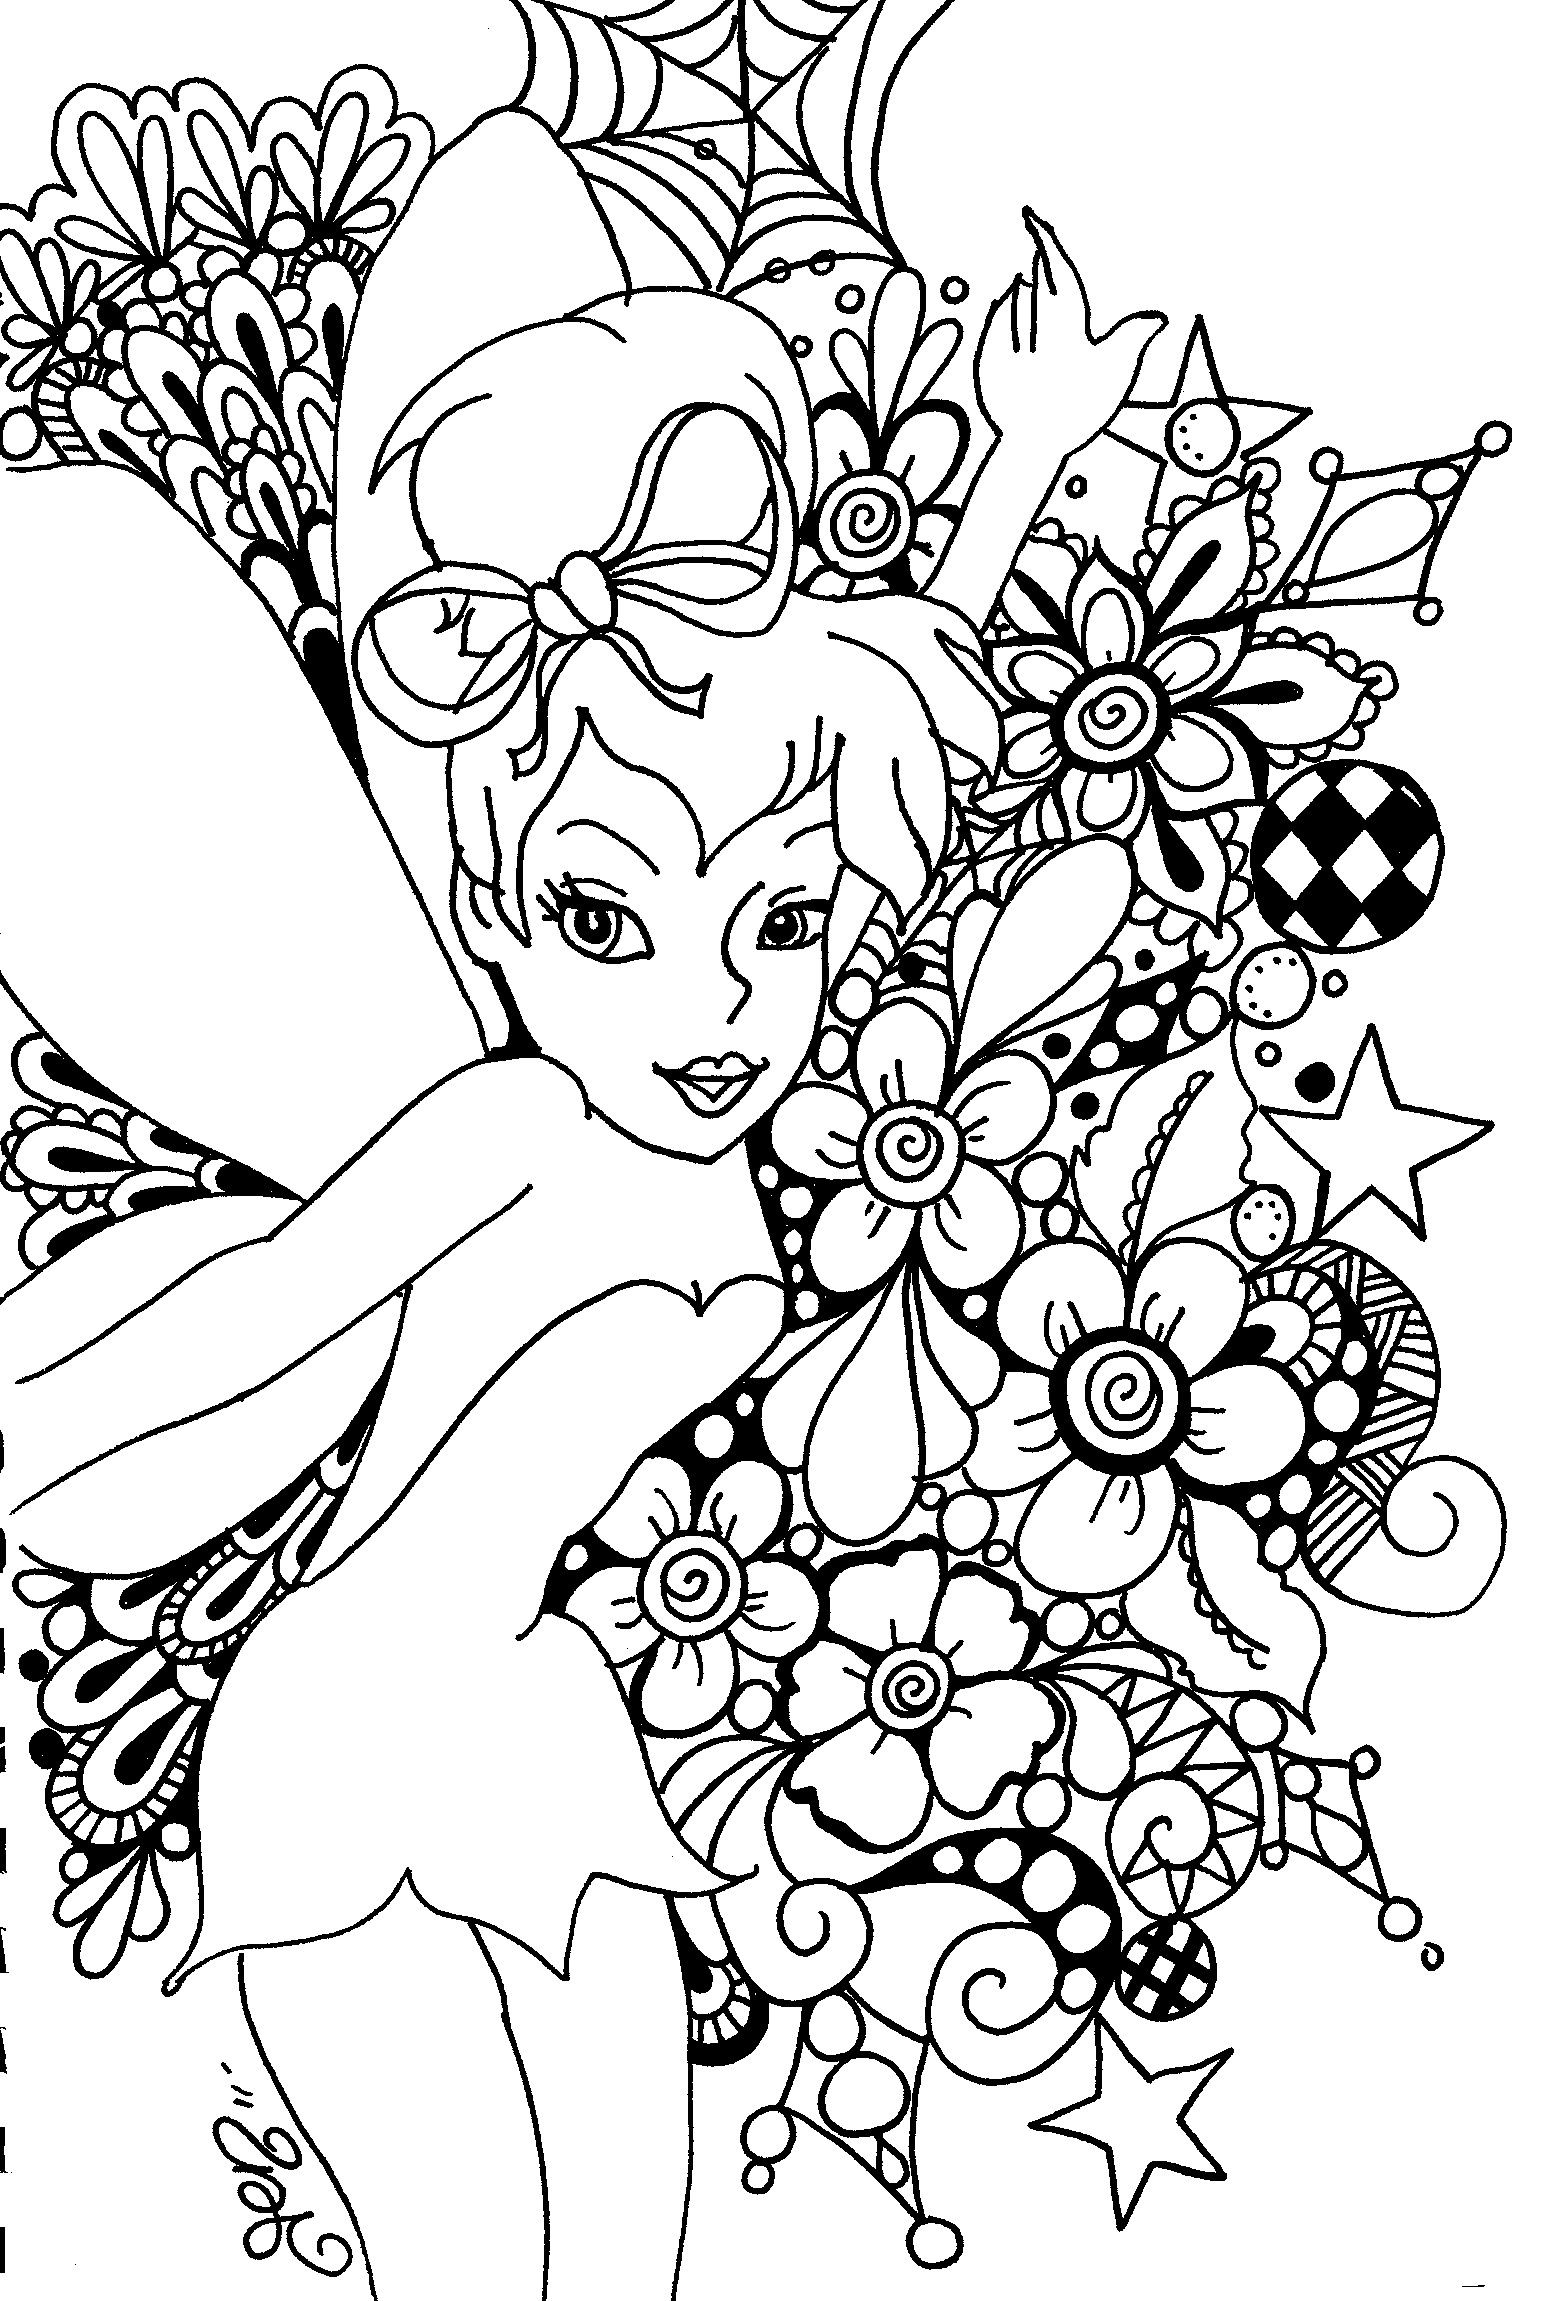 Free Printable Tinkerbell Coloring Pages For Kids | Art ...